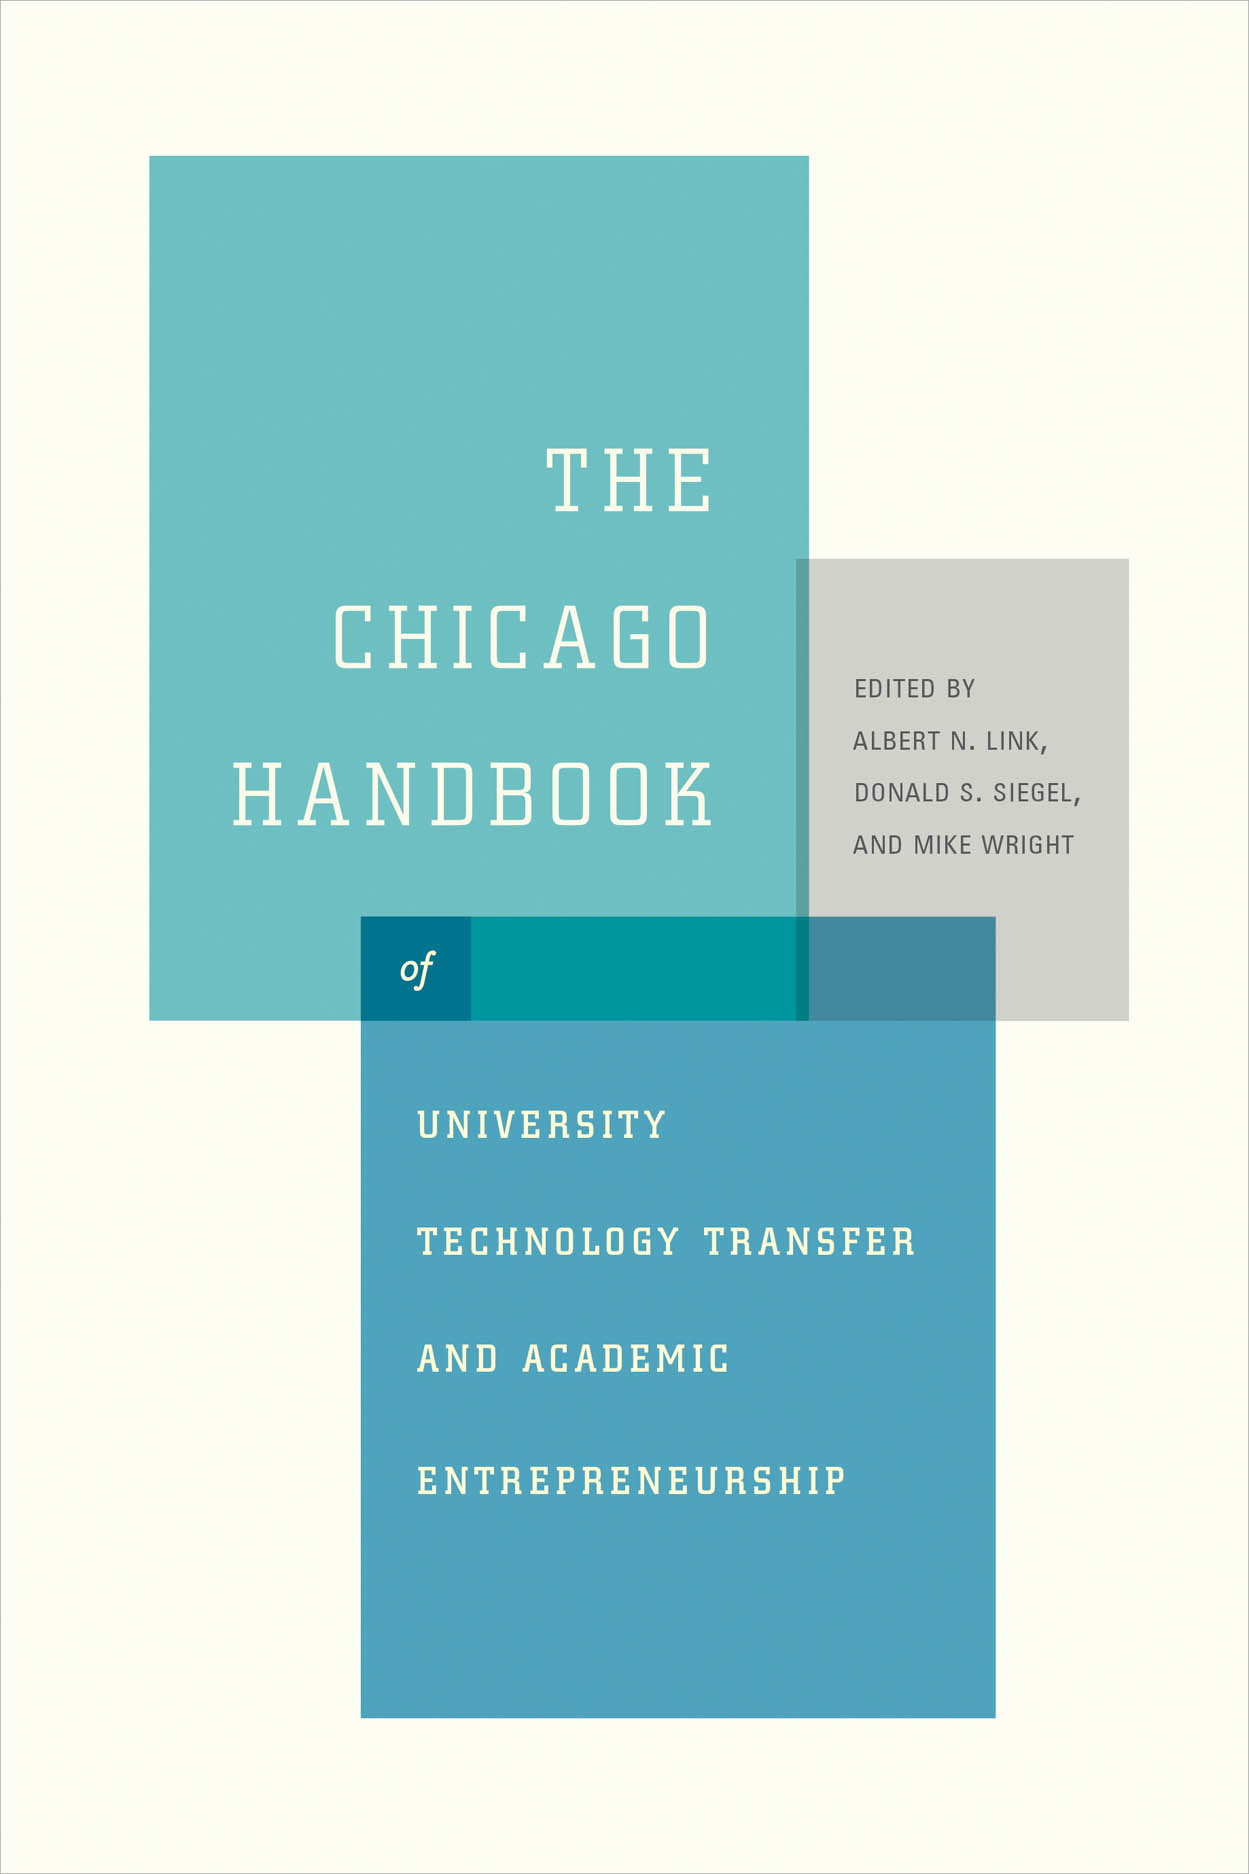 The Chicago Handbook of University Technology Transfer and Academic Entrepreneurship